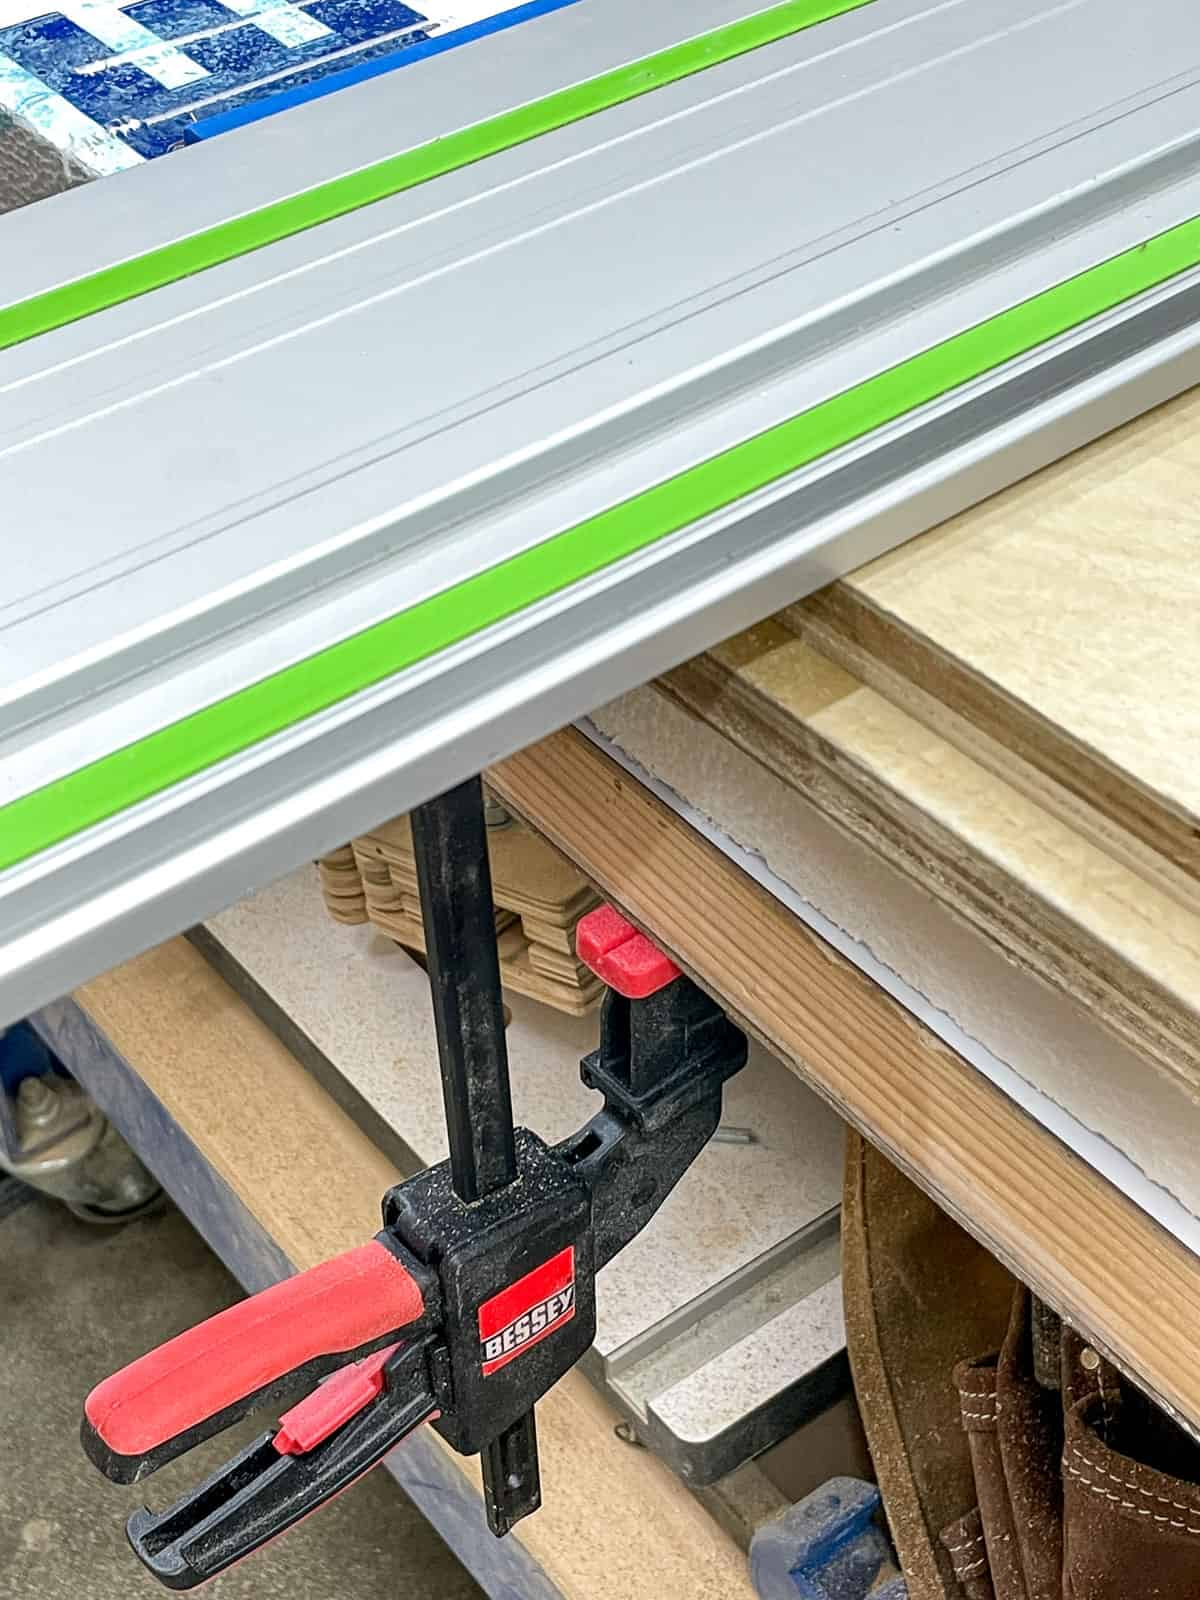 track for track saw secured to workbench with bessey clamp